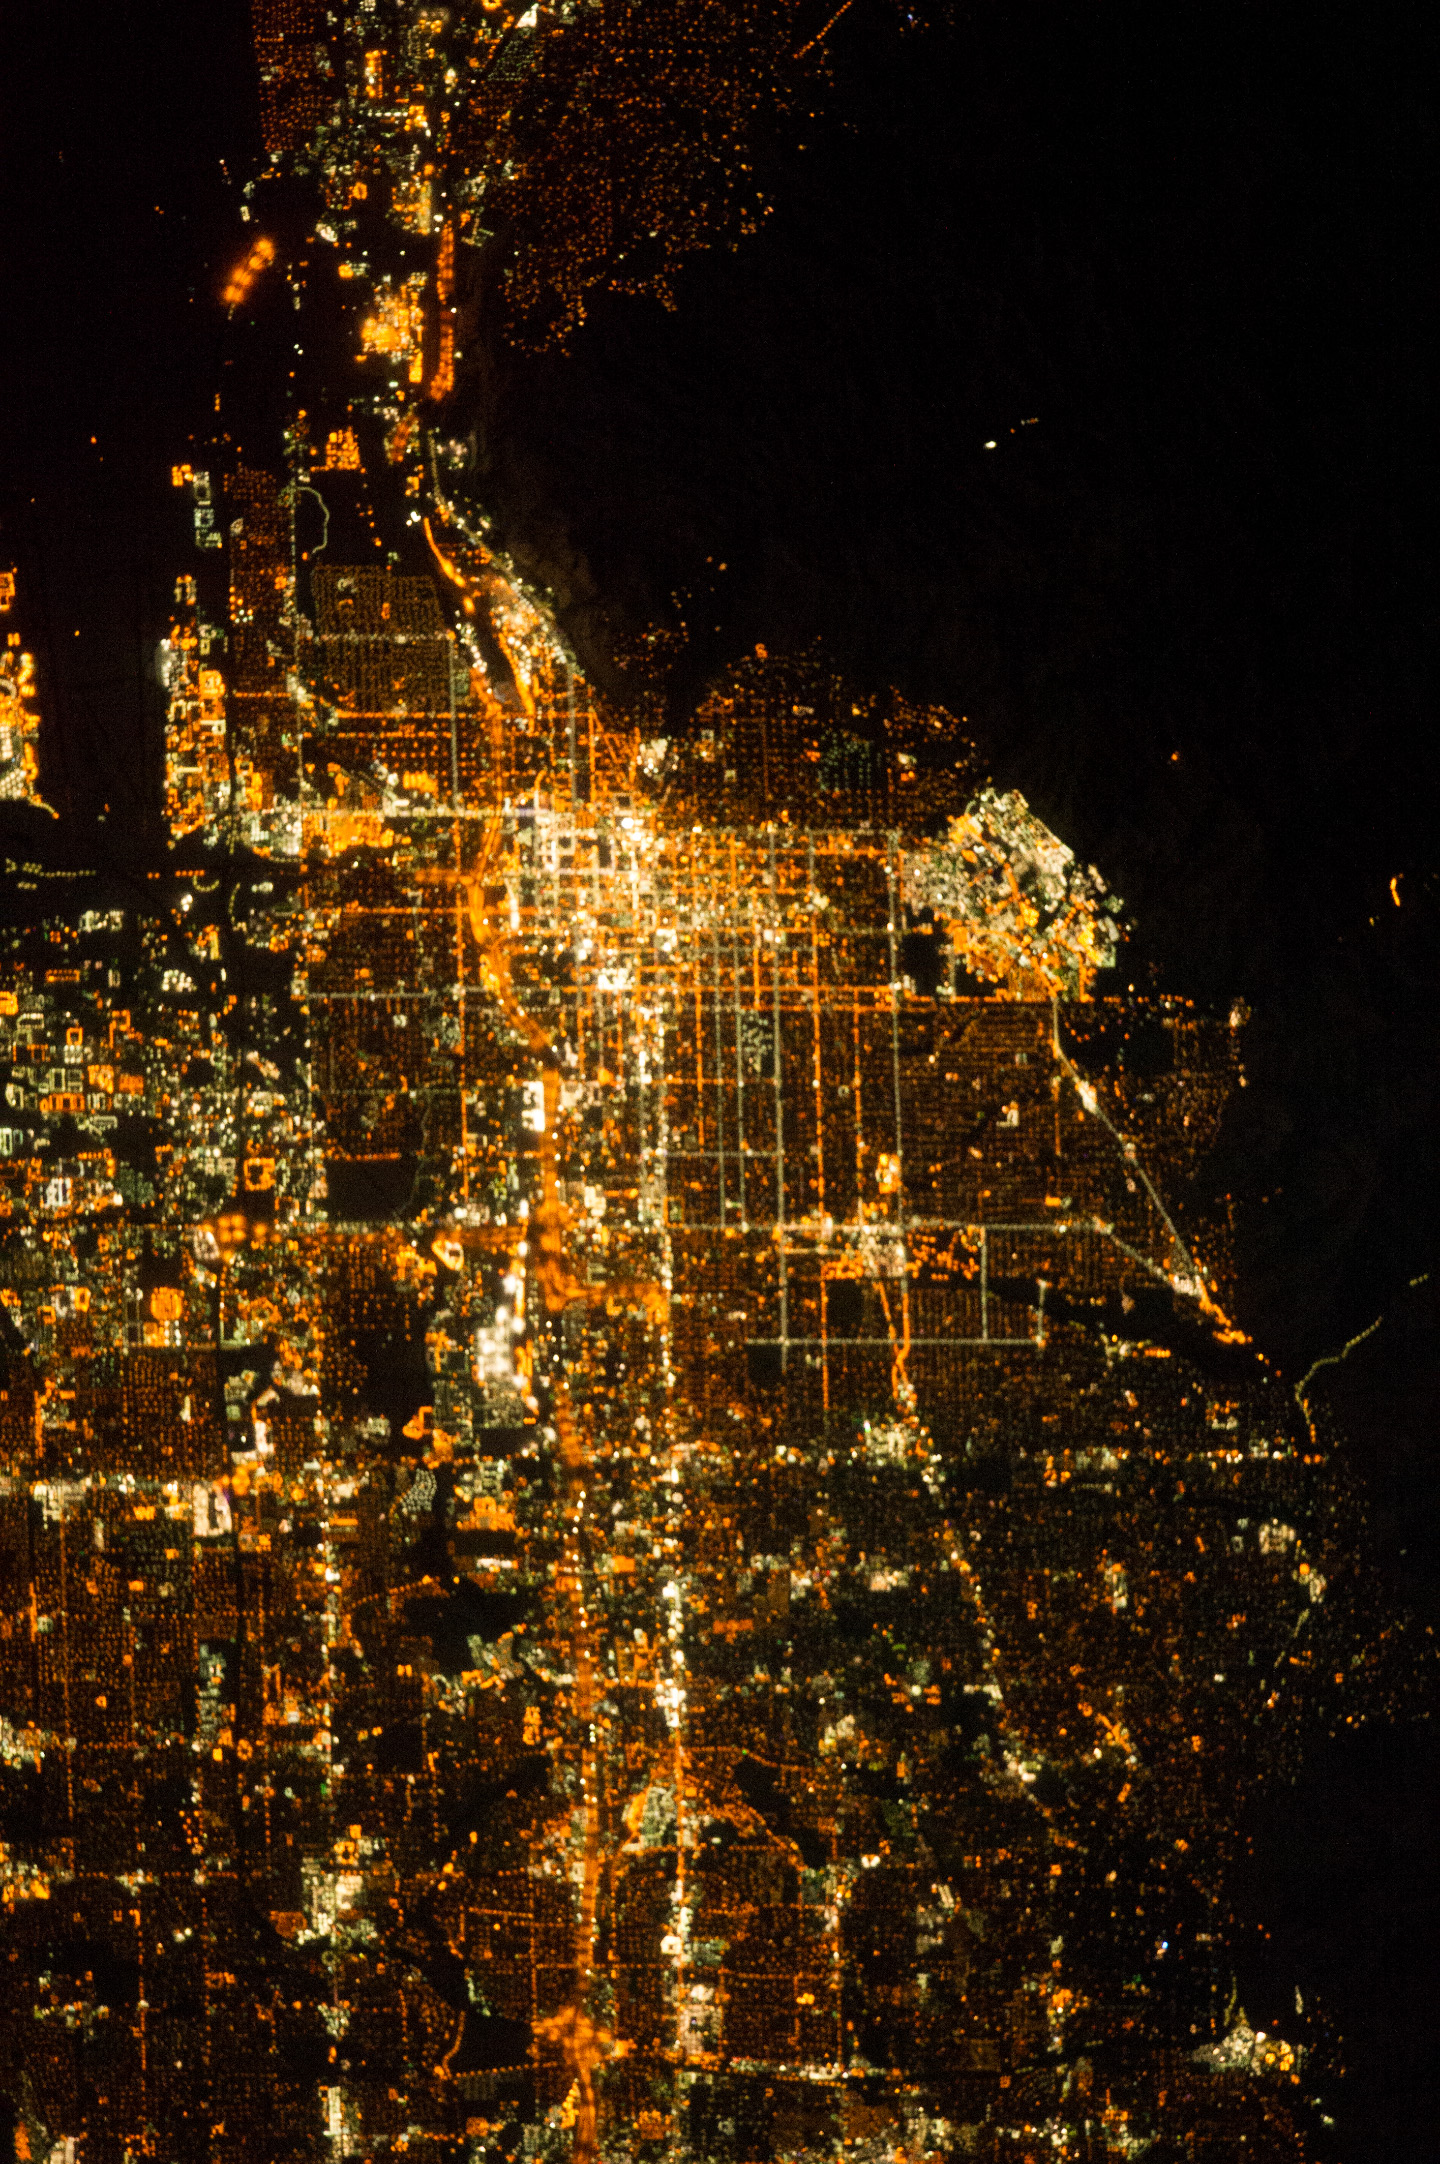 Today's Image of the Day comes thanks to the NASA Earth Observatory and features a look at the city of Salt Lake City at night.